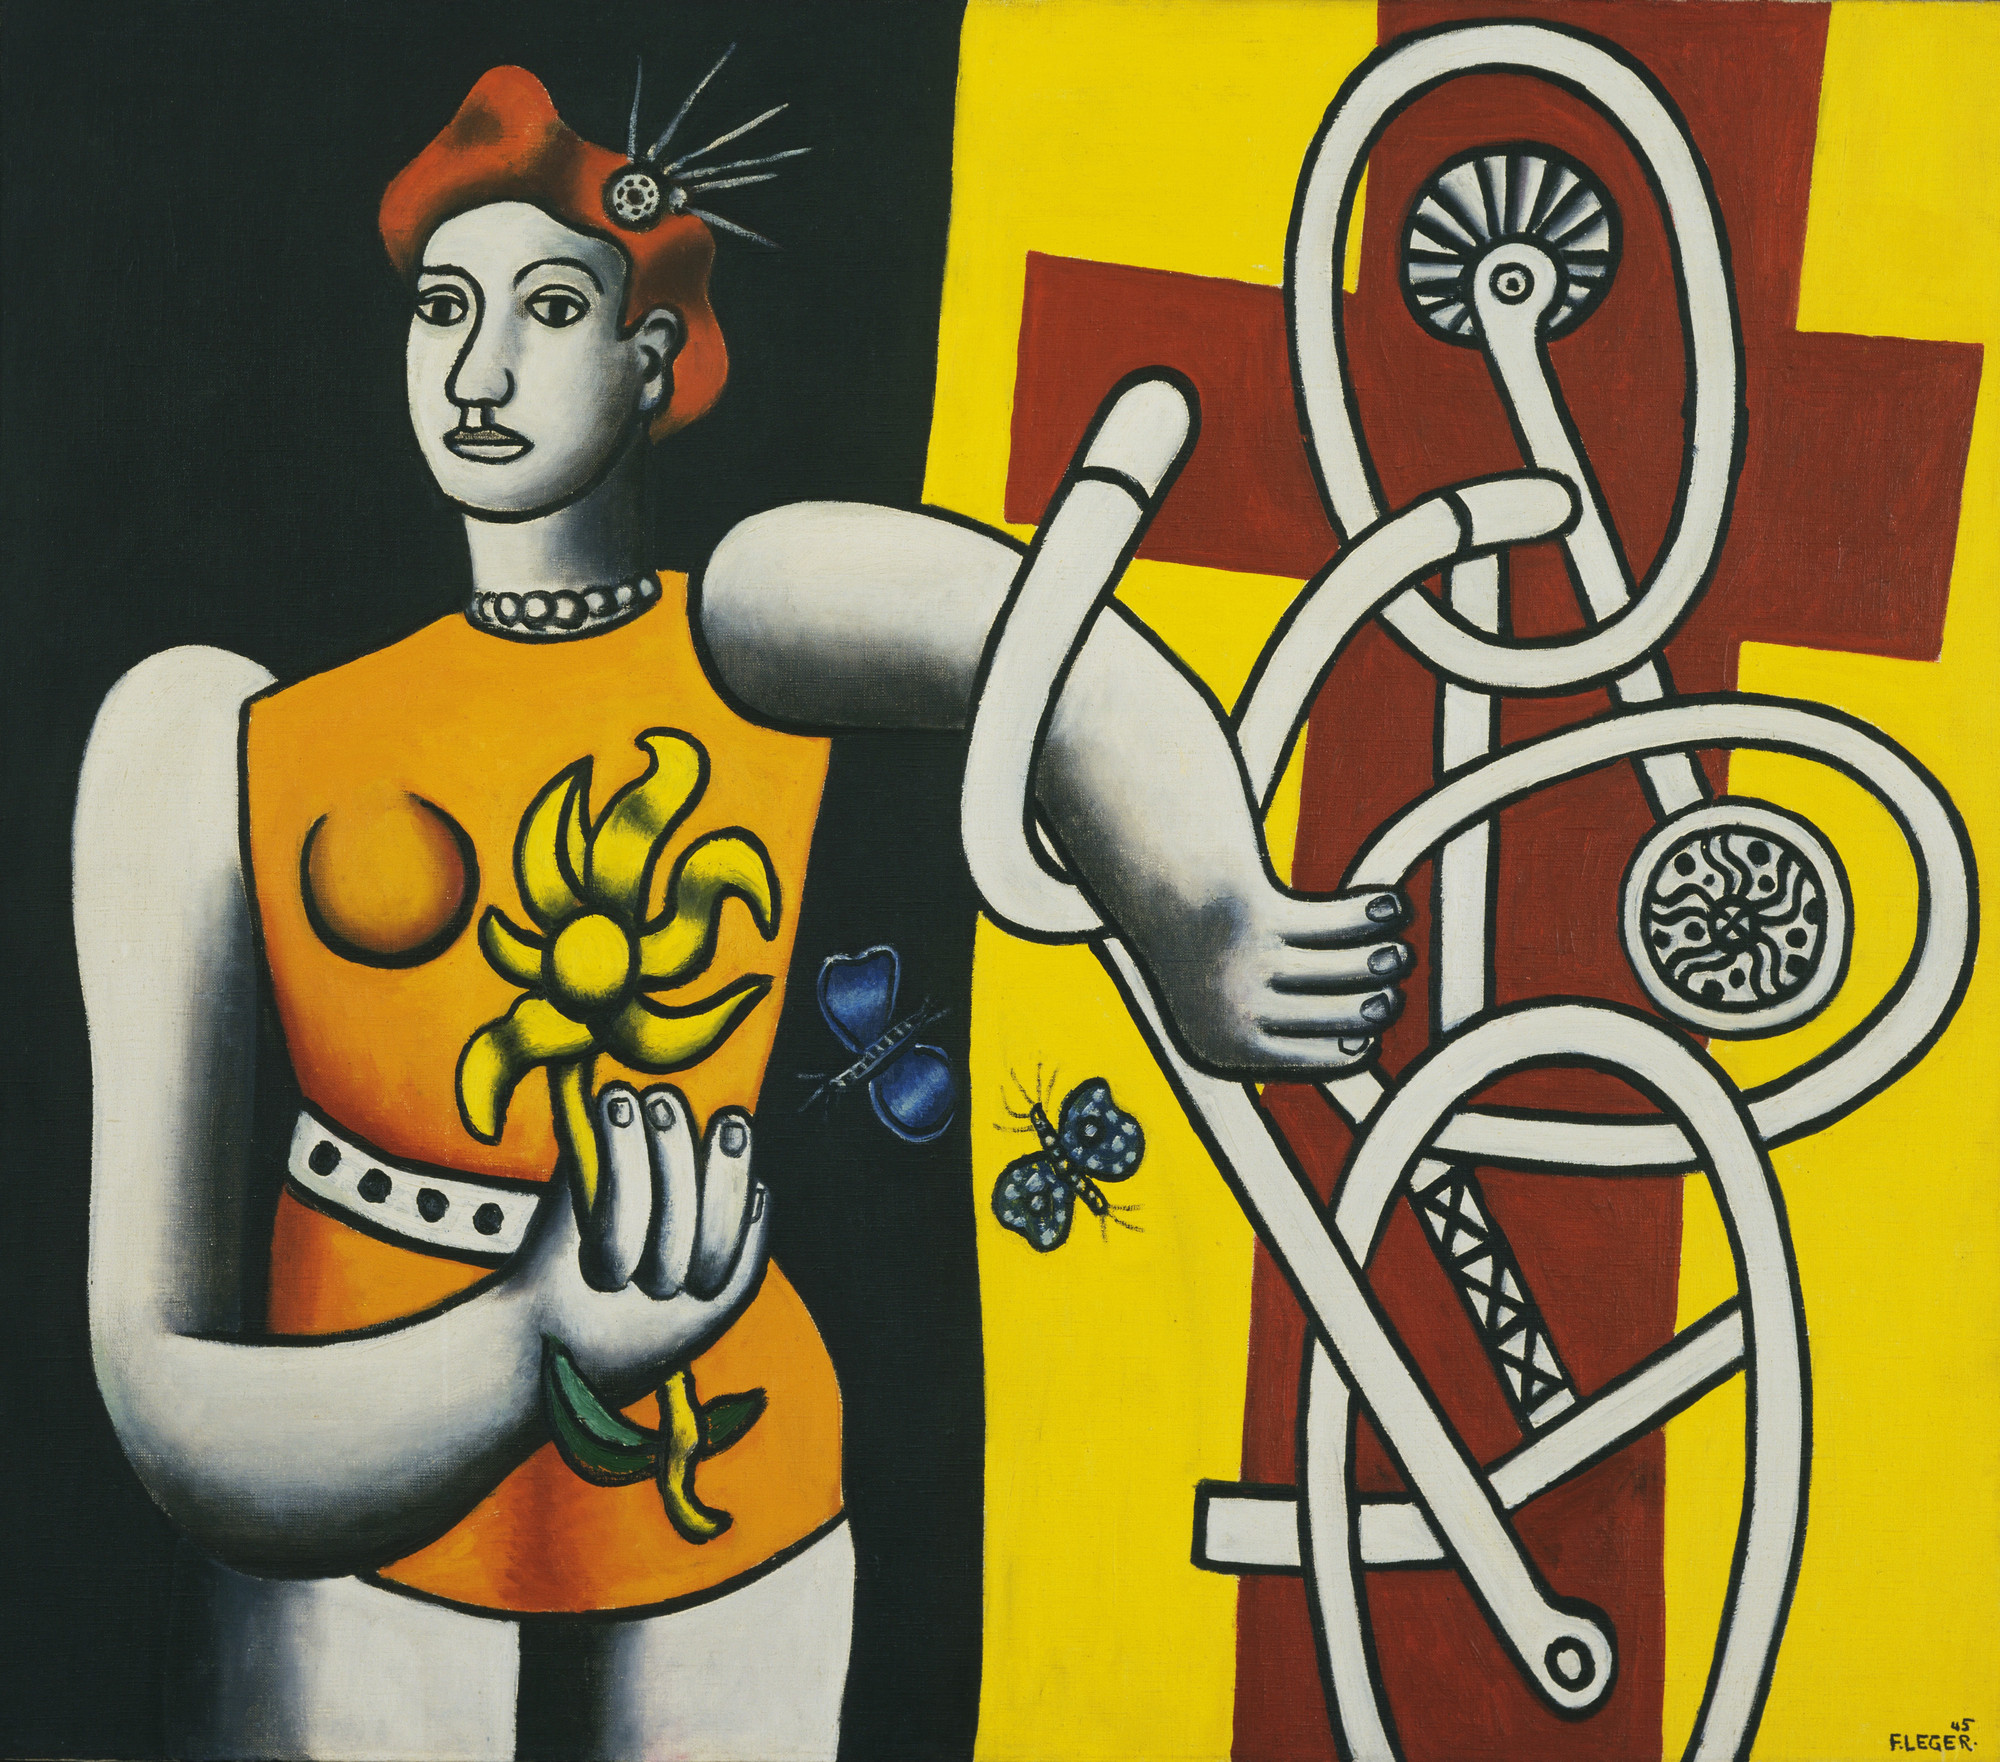 Fernand Léger. La Grande Julie (Big Julie). 1945. Oil on canvas. 44 × 50 1/8″ (111.8 × 127.3 cm). The Museum of Modern Art, New York. Acquired through the Lillie P. Bliss Bequest, 1945. Photograph © 1998 The Museum of Modern Art, New York. © Estate of Fernand Léger/Artists Rights Society (ARS), N.Y.